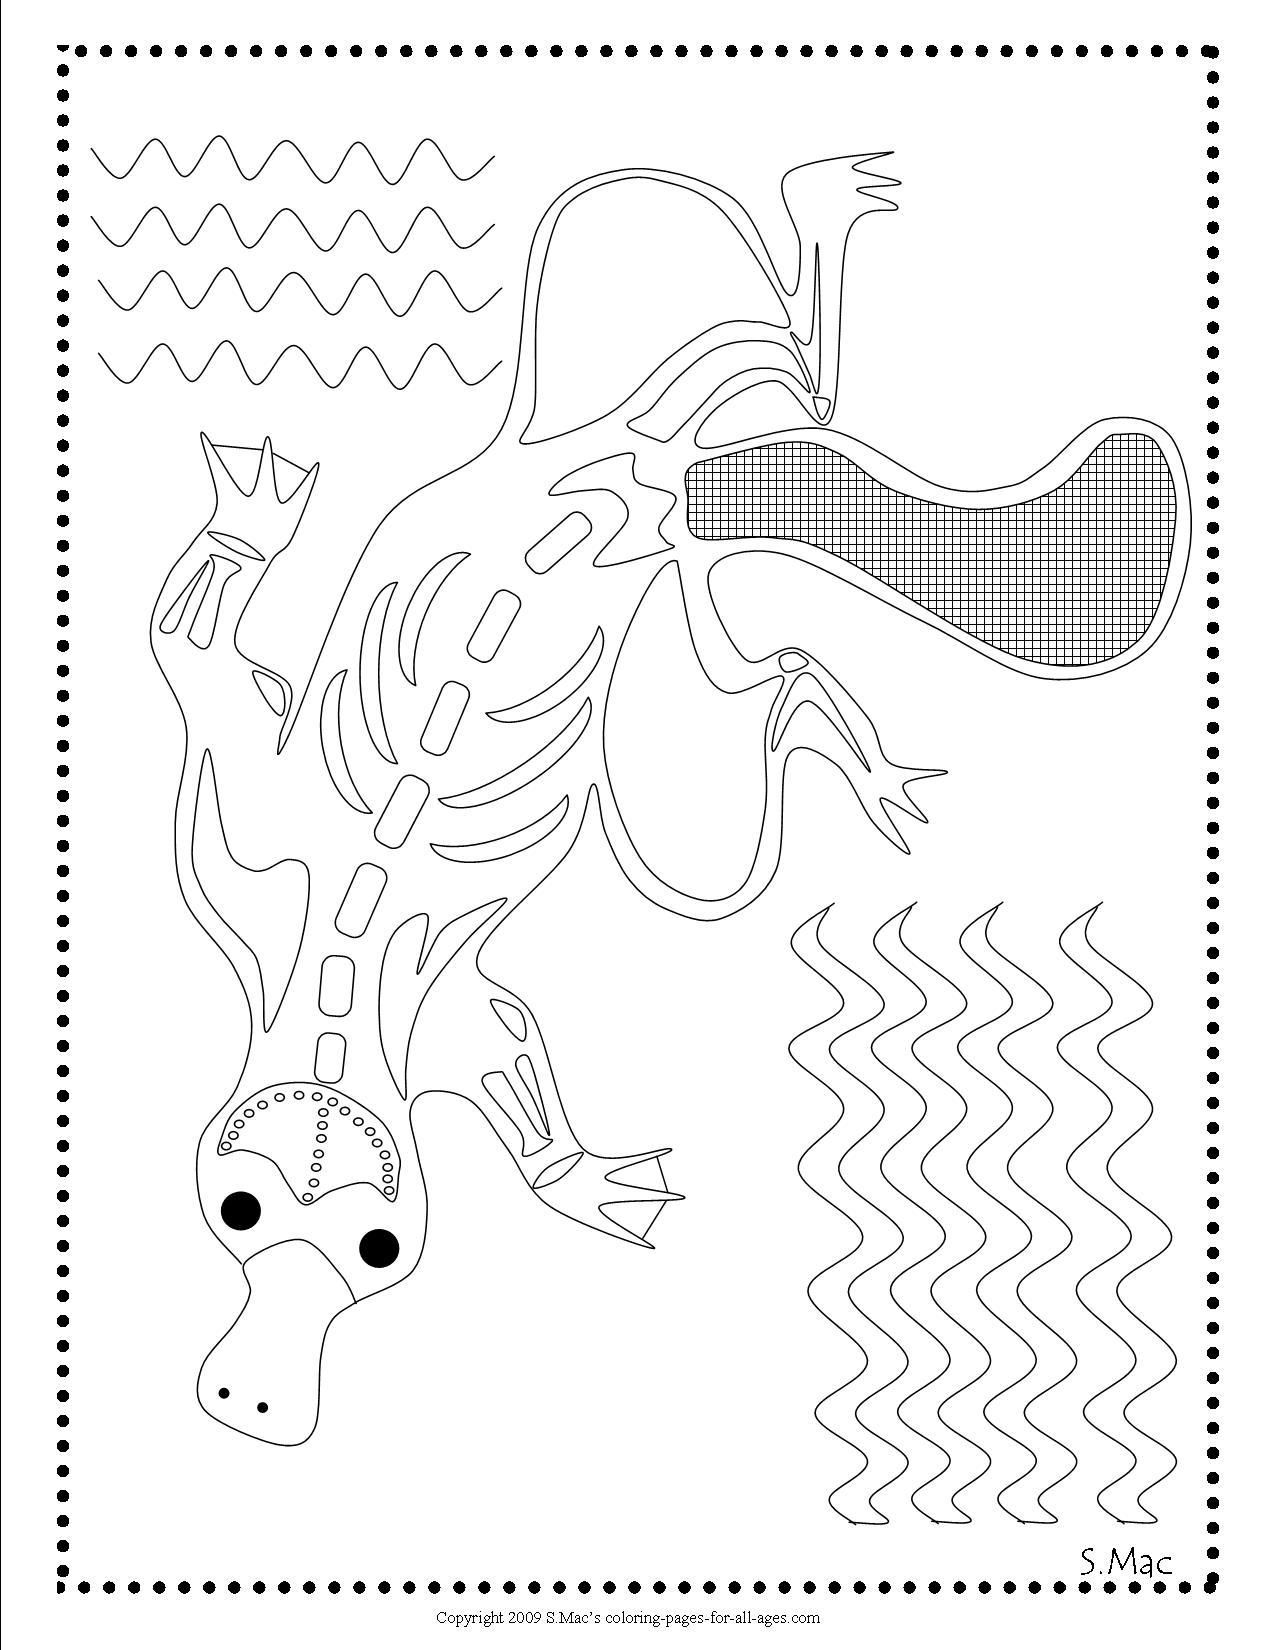 aboriginal dot painting colouring pages smac39s x ray art dingo coloring page xray art aboriginal dot painting pages colouring